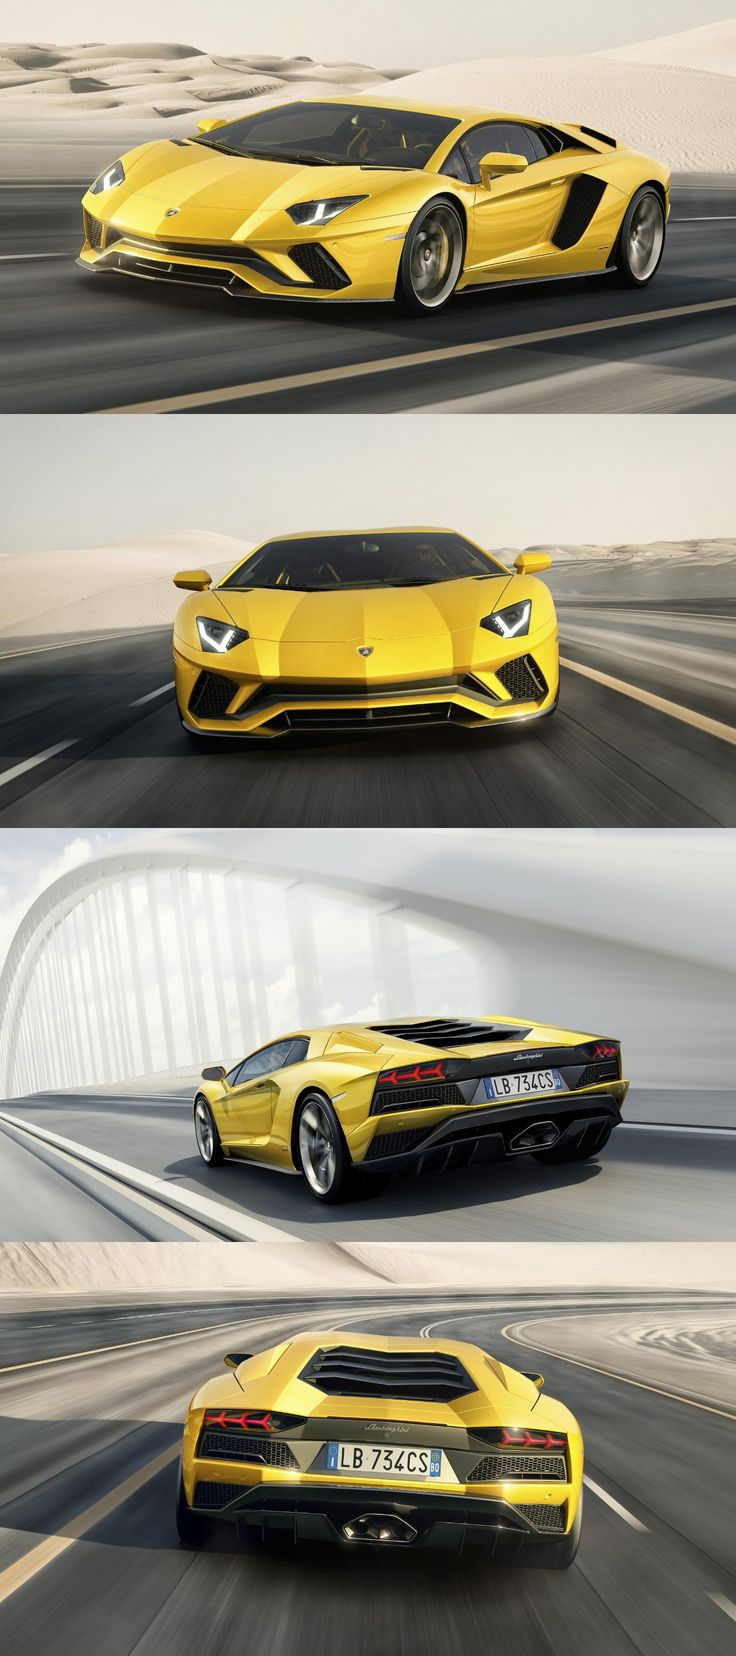 Lamborghini Aventador S Coupe Unveiled with 730 Horsepower